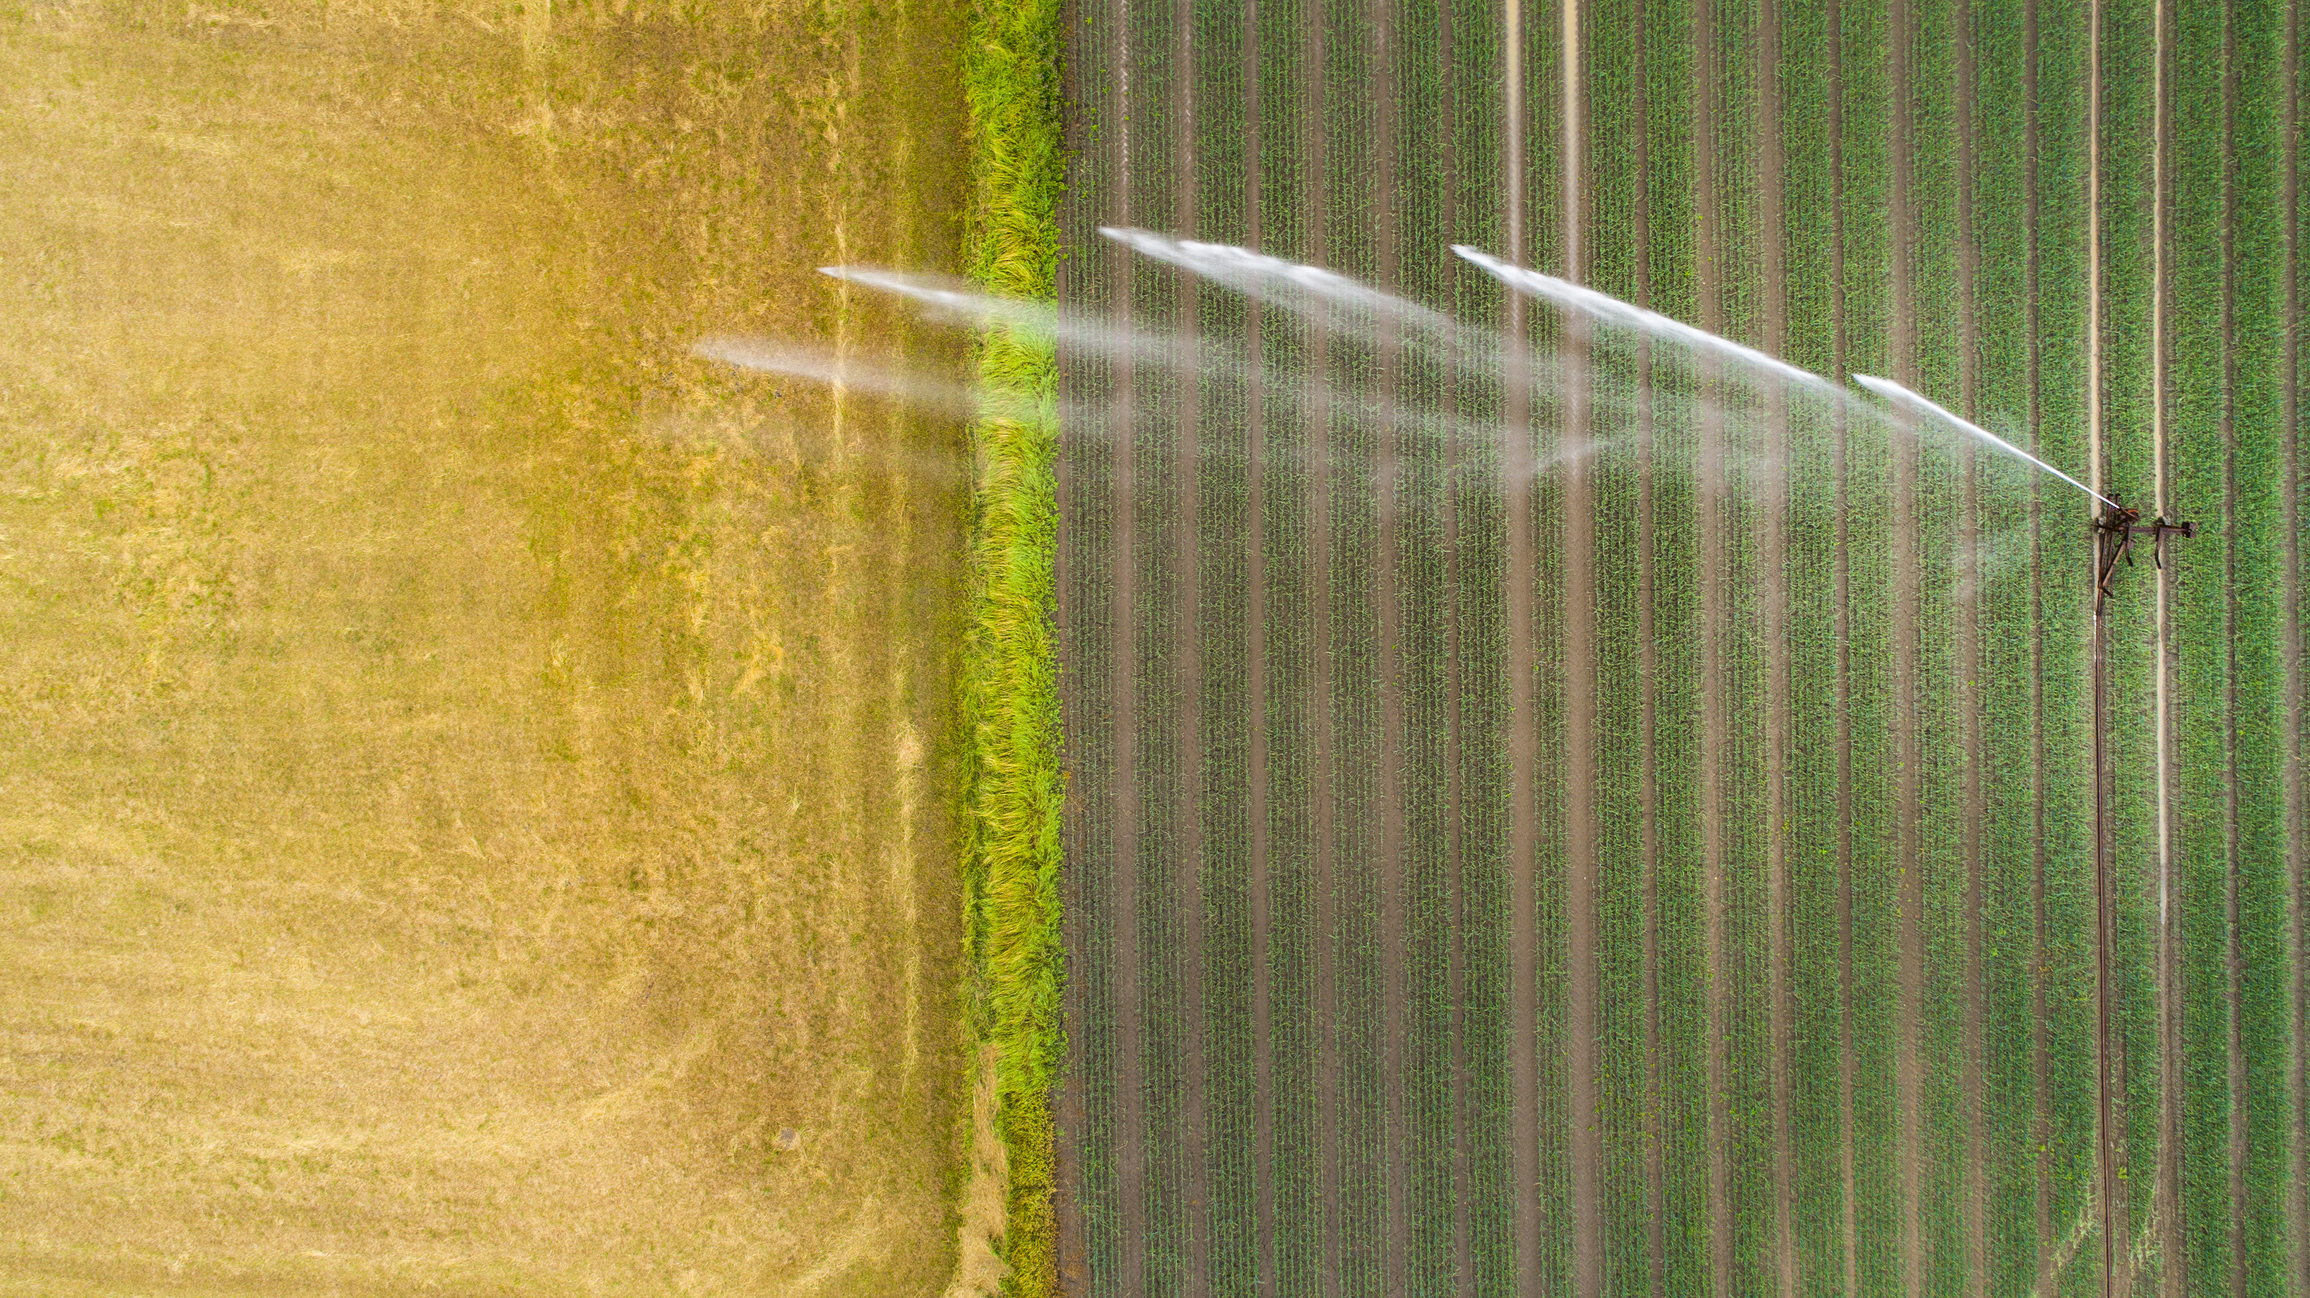 The Best In Irrigation Control Technology For Crop Farms